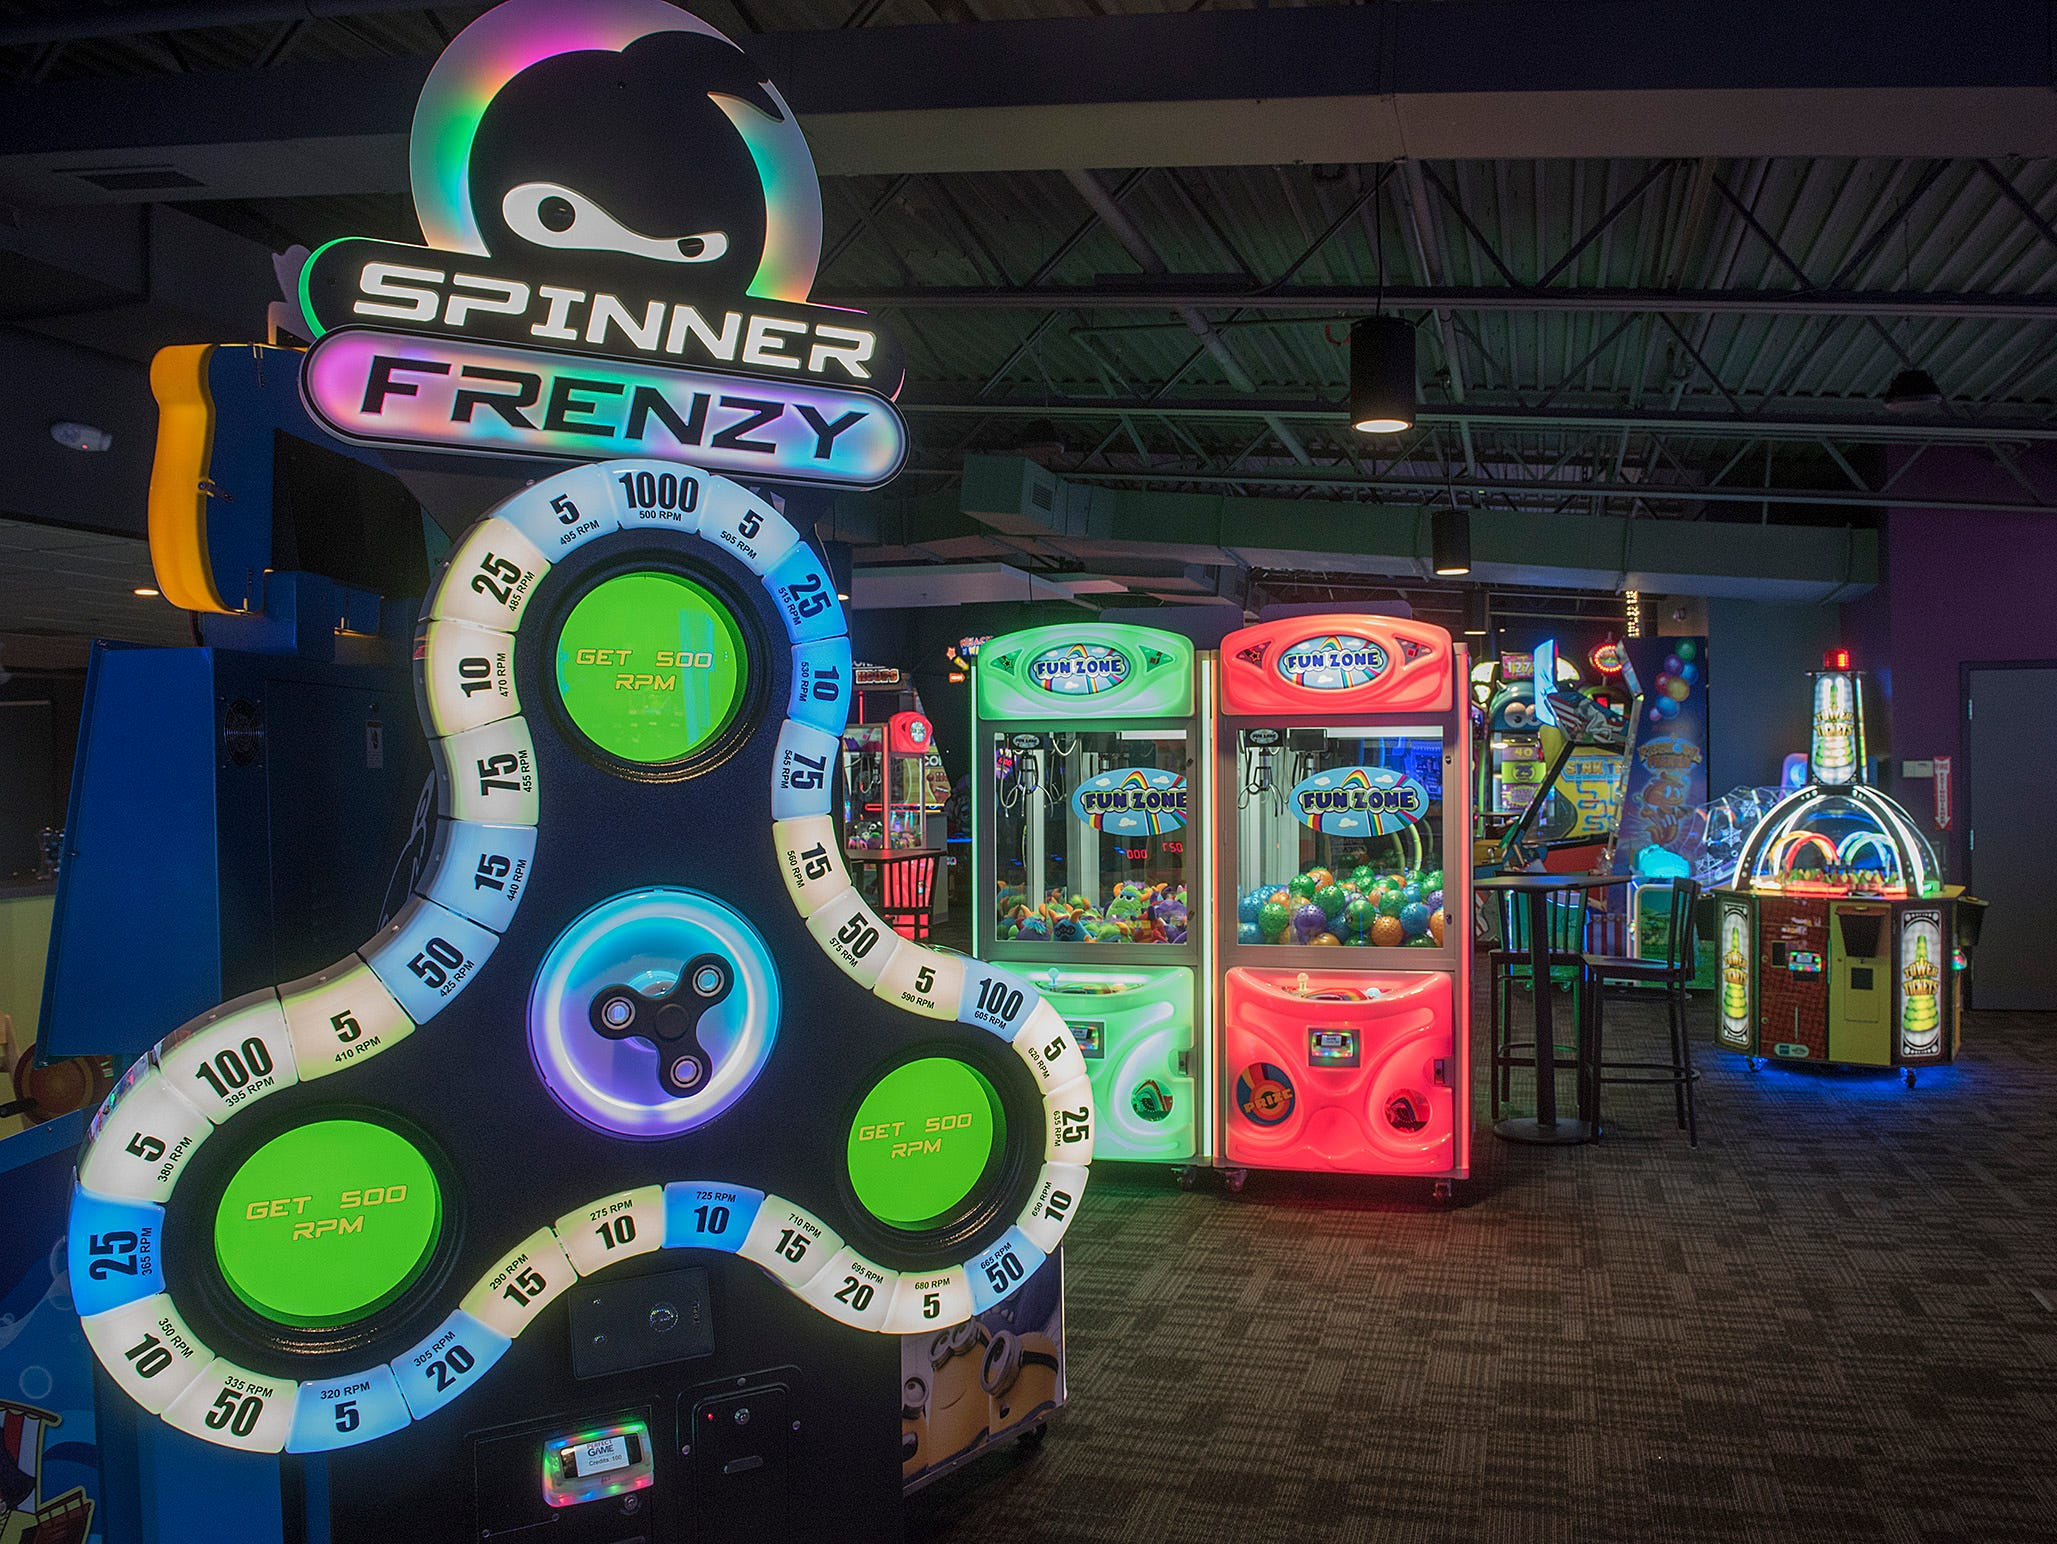 You can get in a frenzy with arcade games at Perfect Game.